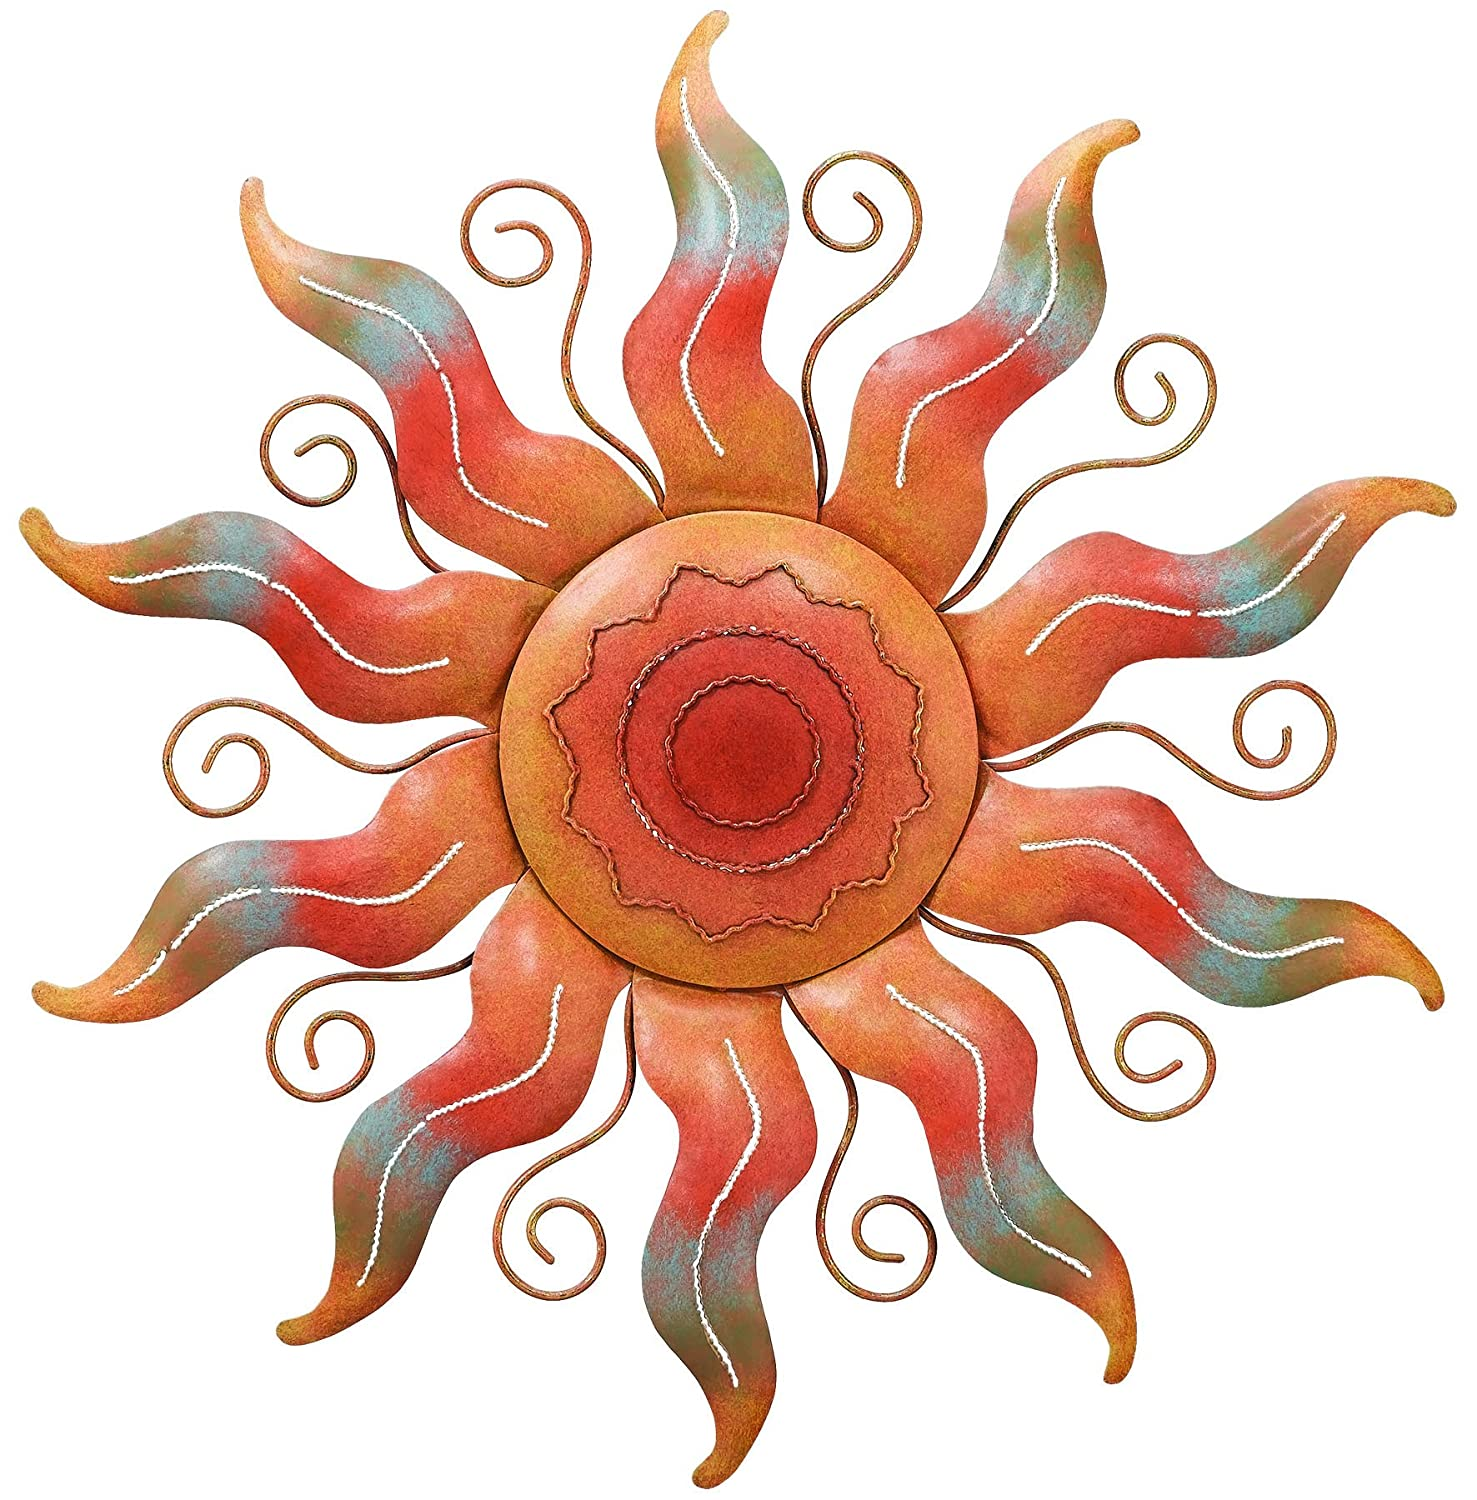 Amazon.com  Regal Art u0026Gift Sun Wall Decor  Wall Sculptures  Garden u0026 Outdoor  sc 1 st  Amazon.com : wall art sun - www.pureclipart.com